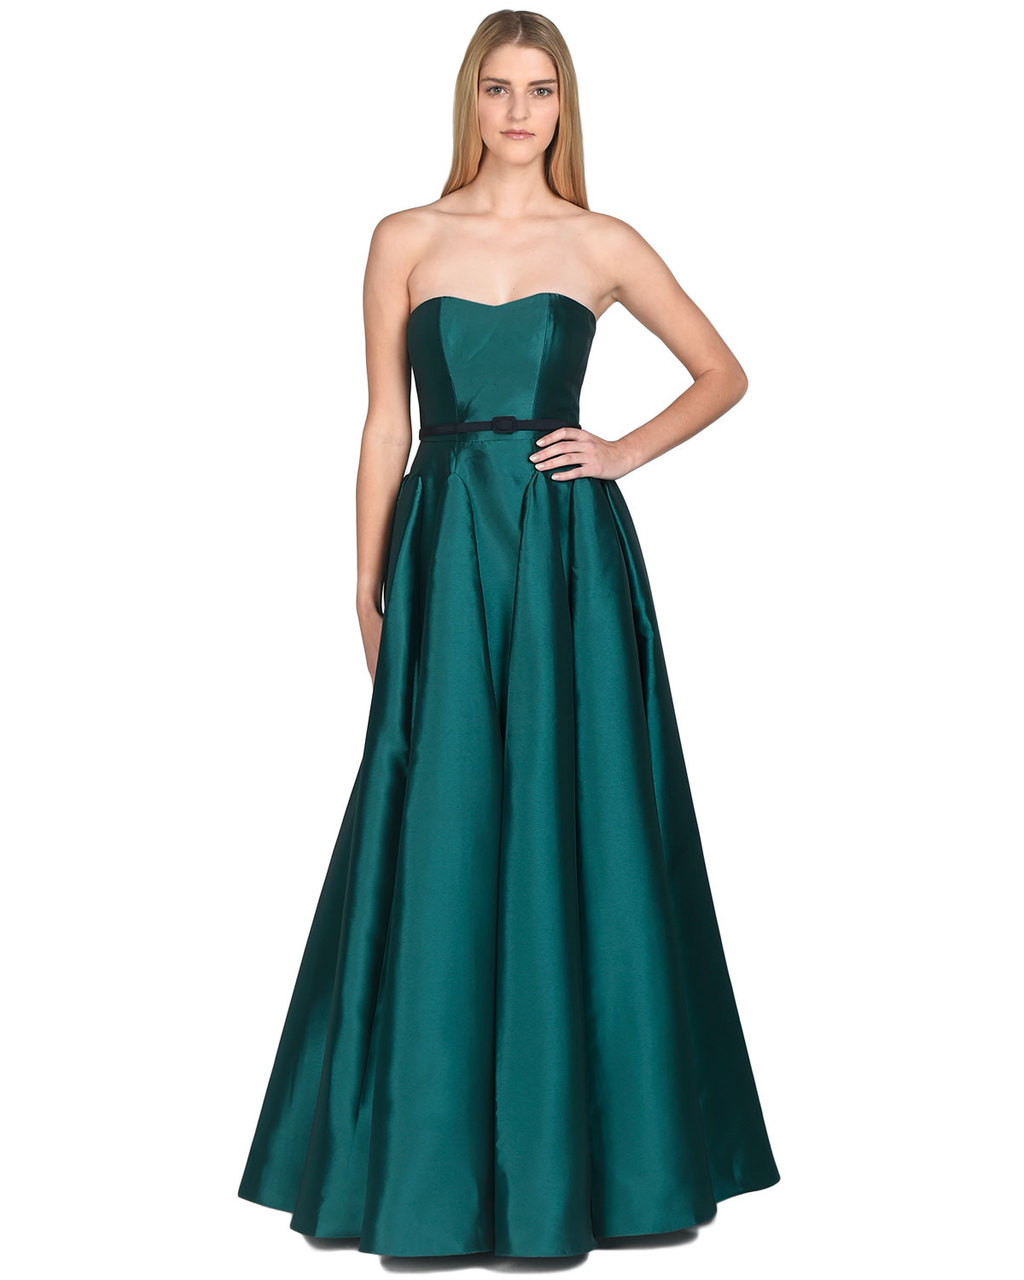 ae633295f0e0 Strapless Evening Dress